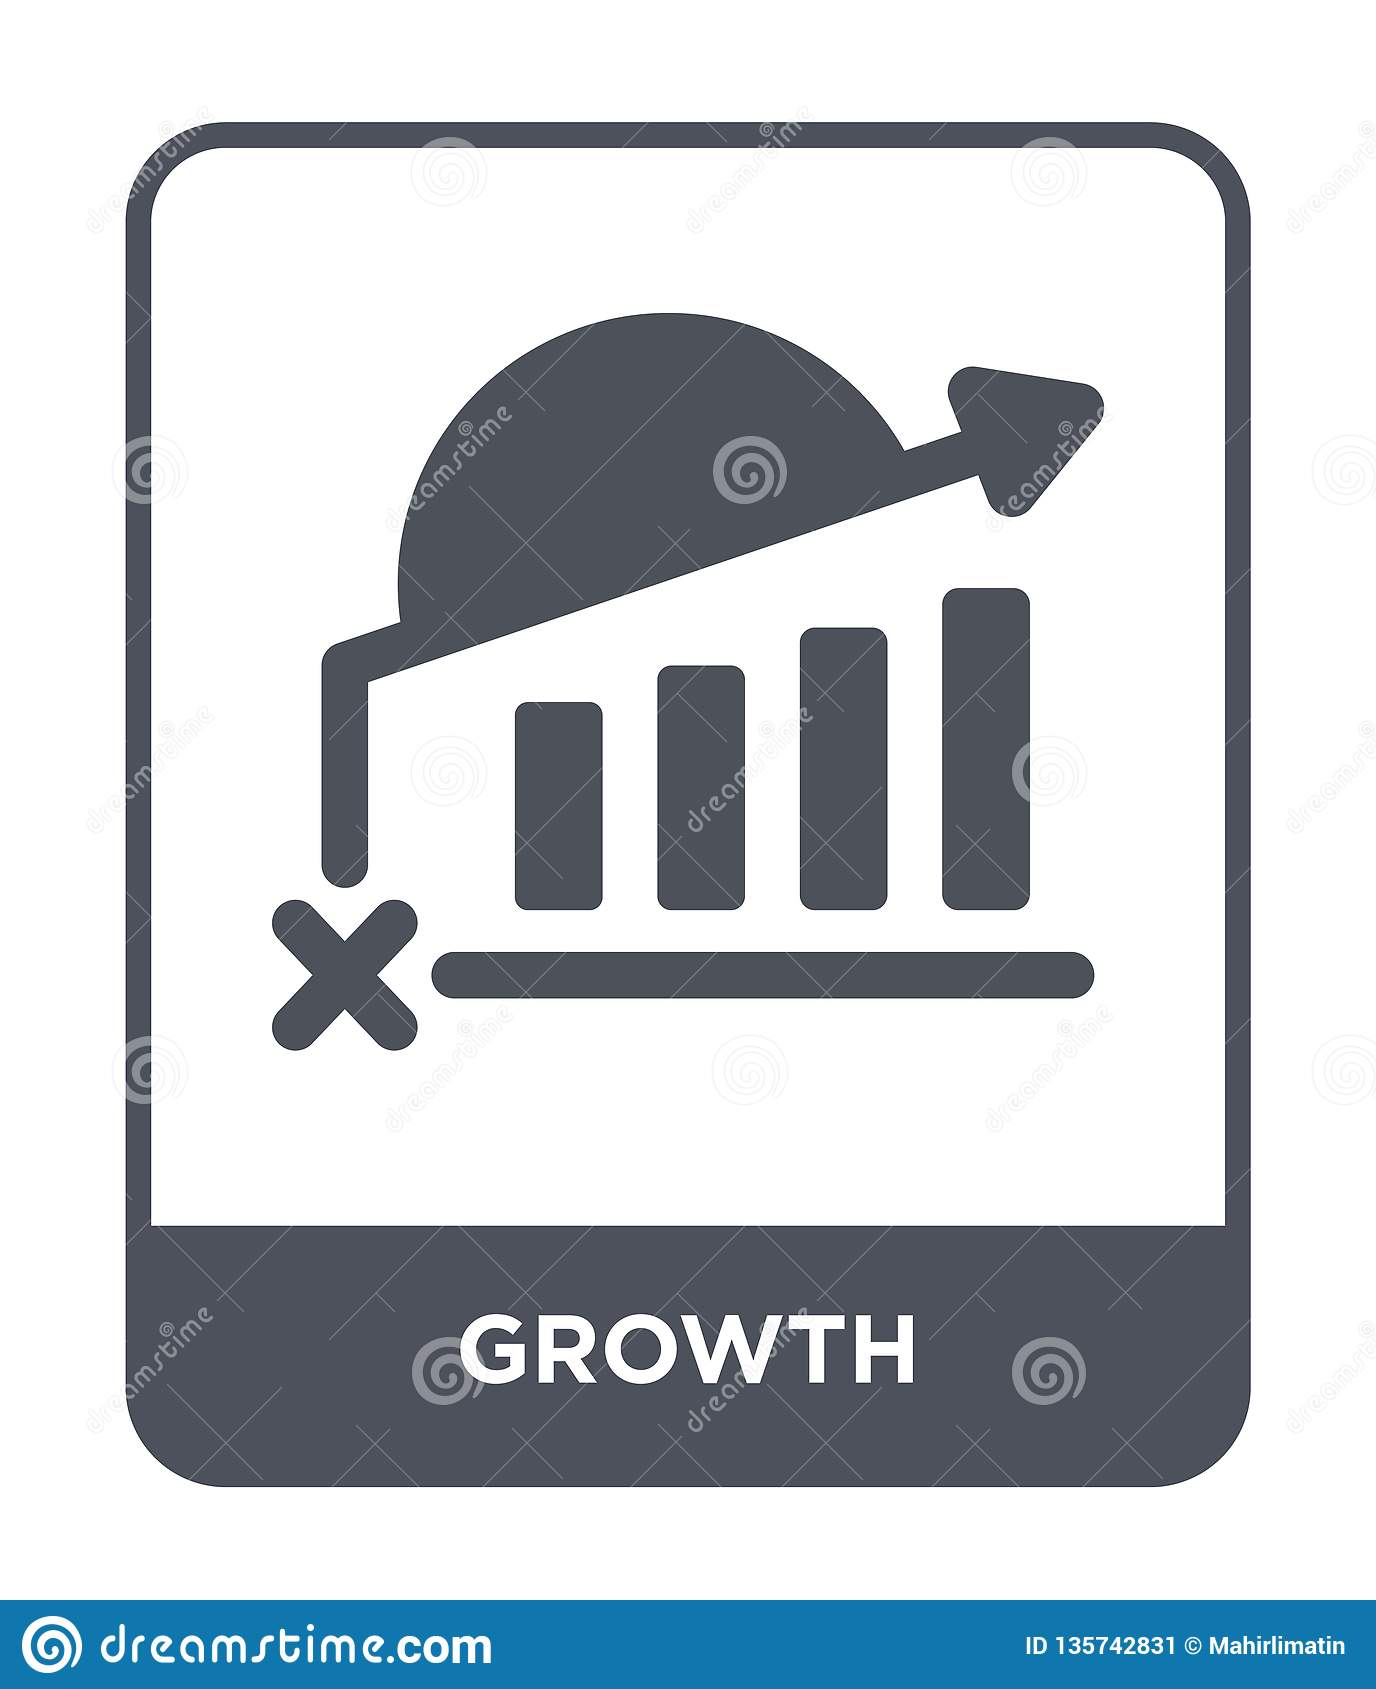 growth icon in trendy design style. growth icon isolated on white background. growth vector icon simple and modern flat symbol for